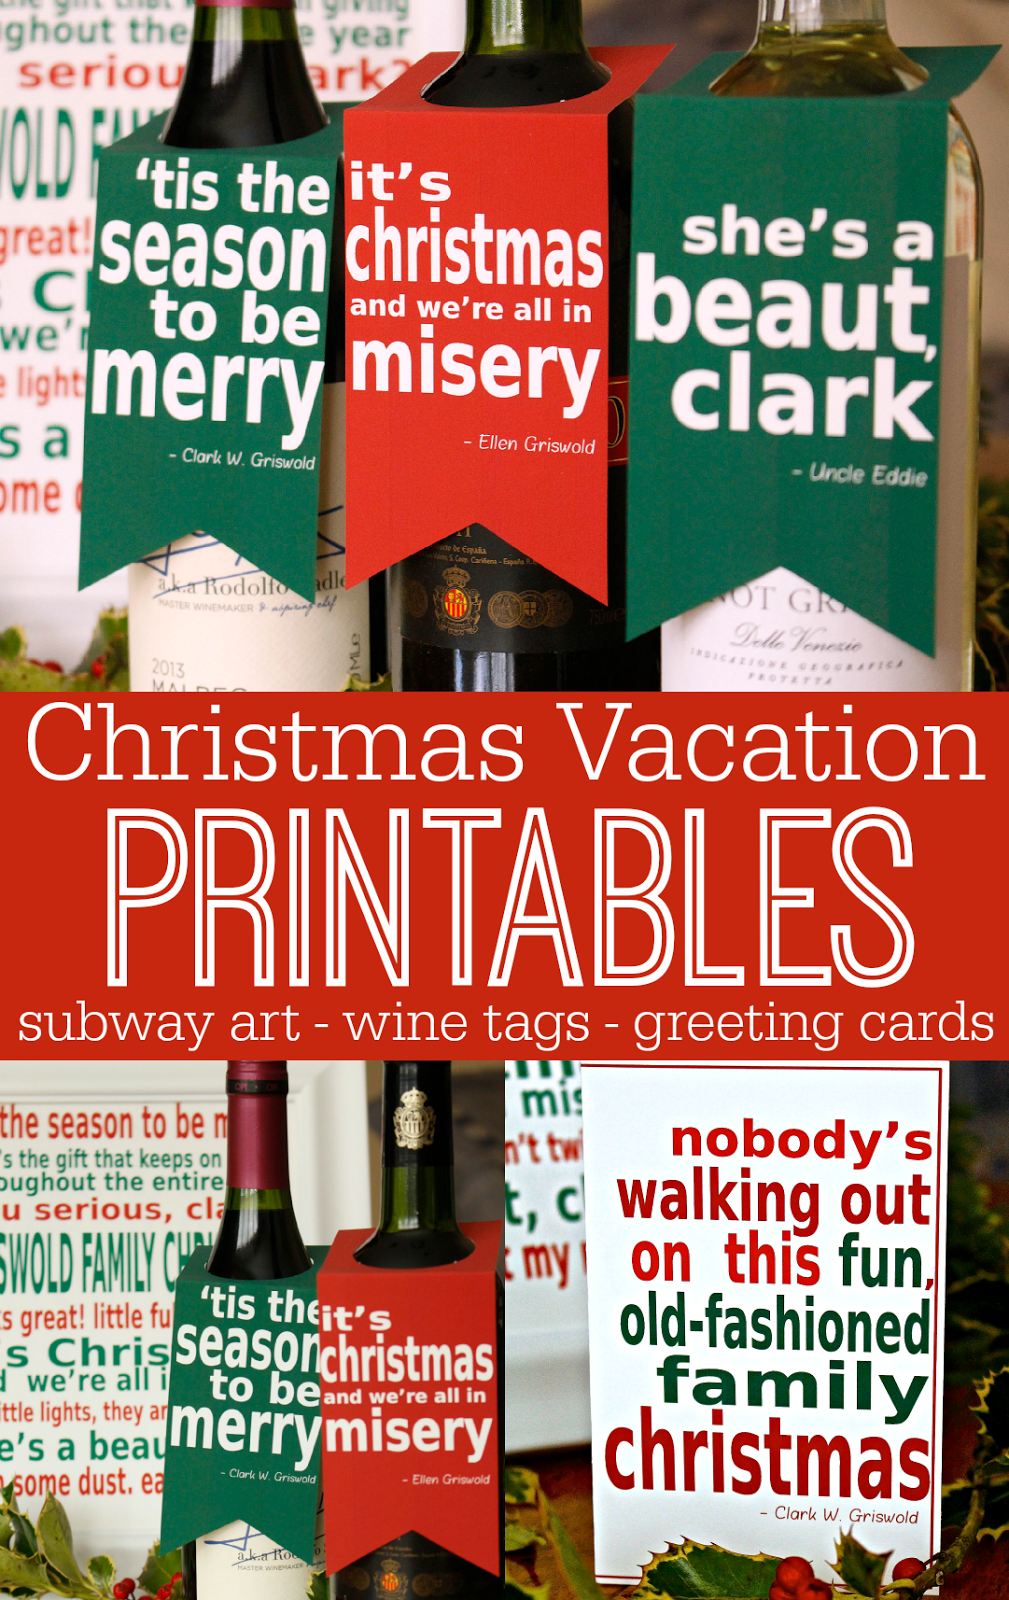 Free christmas vacation printables wine tags subway art national lampoons christmas vacation movie printable quotes festive subway art wine tags and greeting cards kristyandbryce Image collections